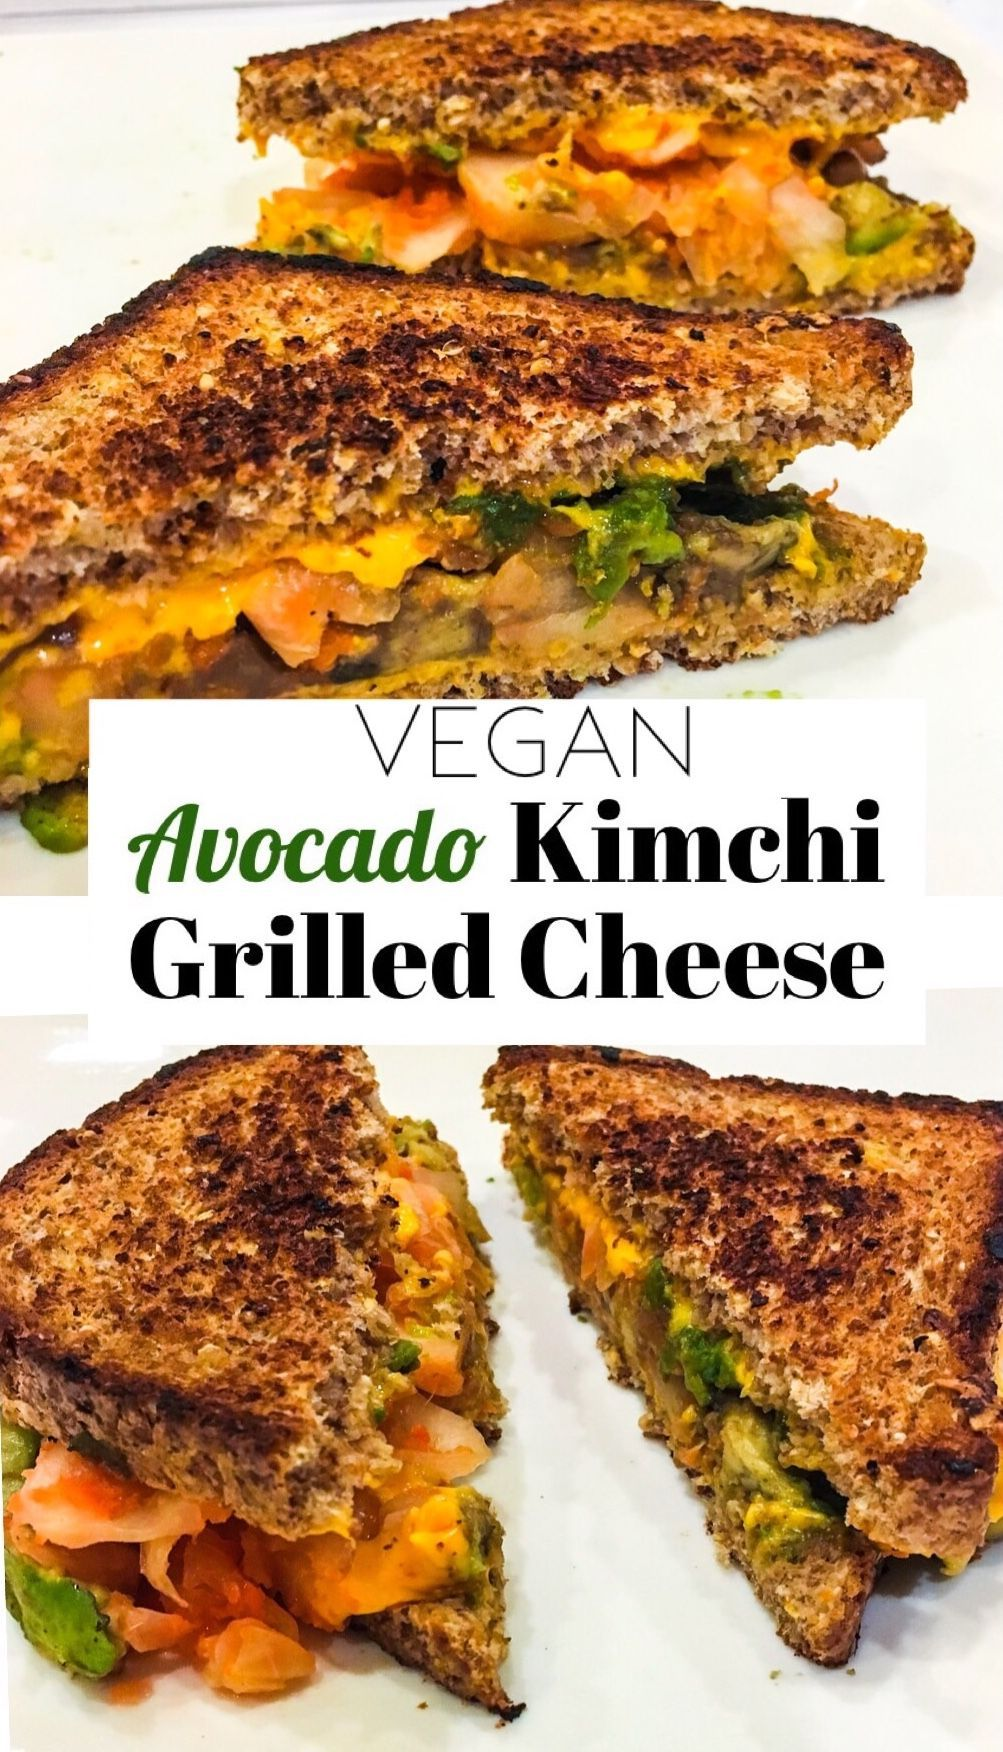 Avocado Kimchi Grilled Cheese - My Planted Plate Avocado Kimchi Grilled Cheese - My Planted Plate H